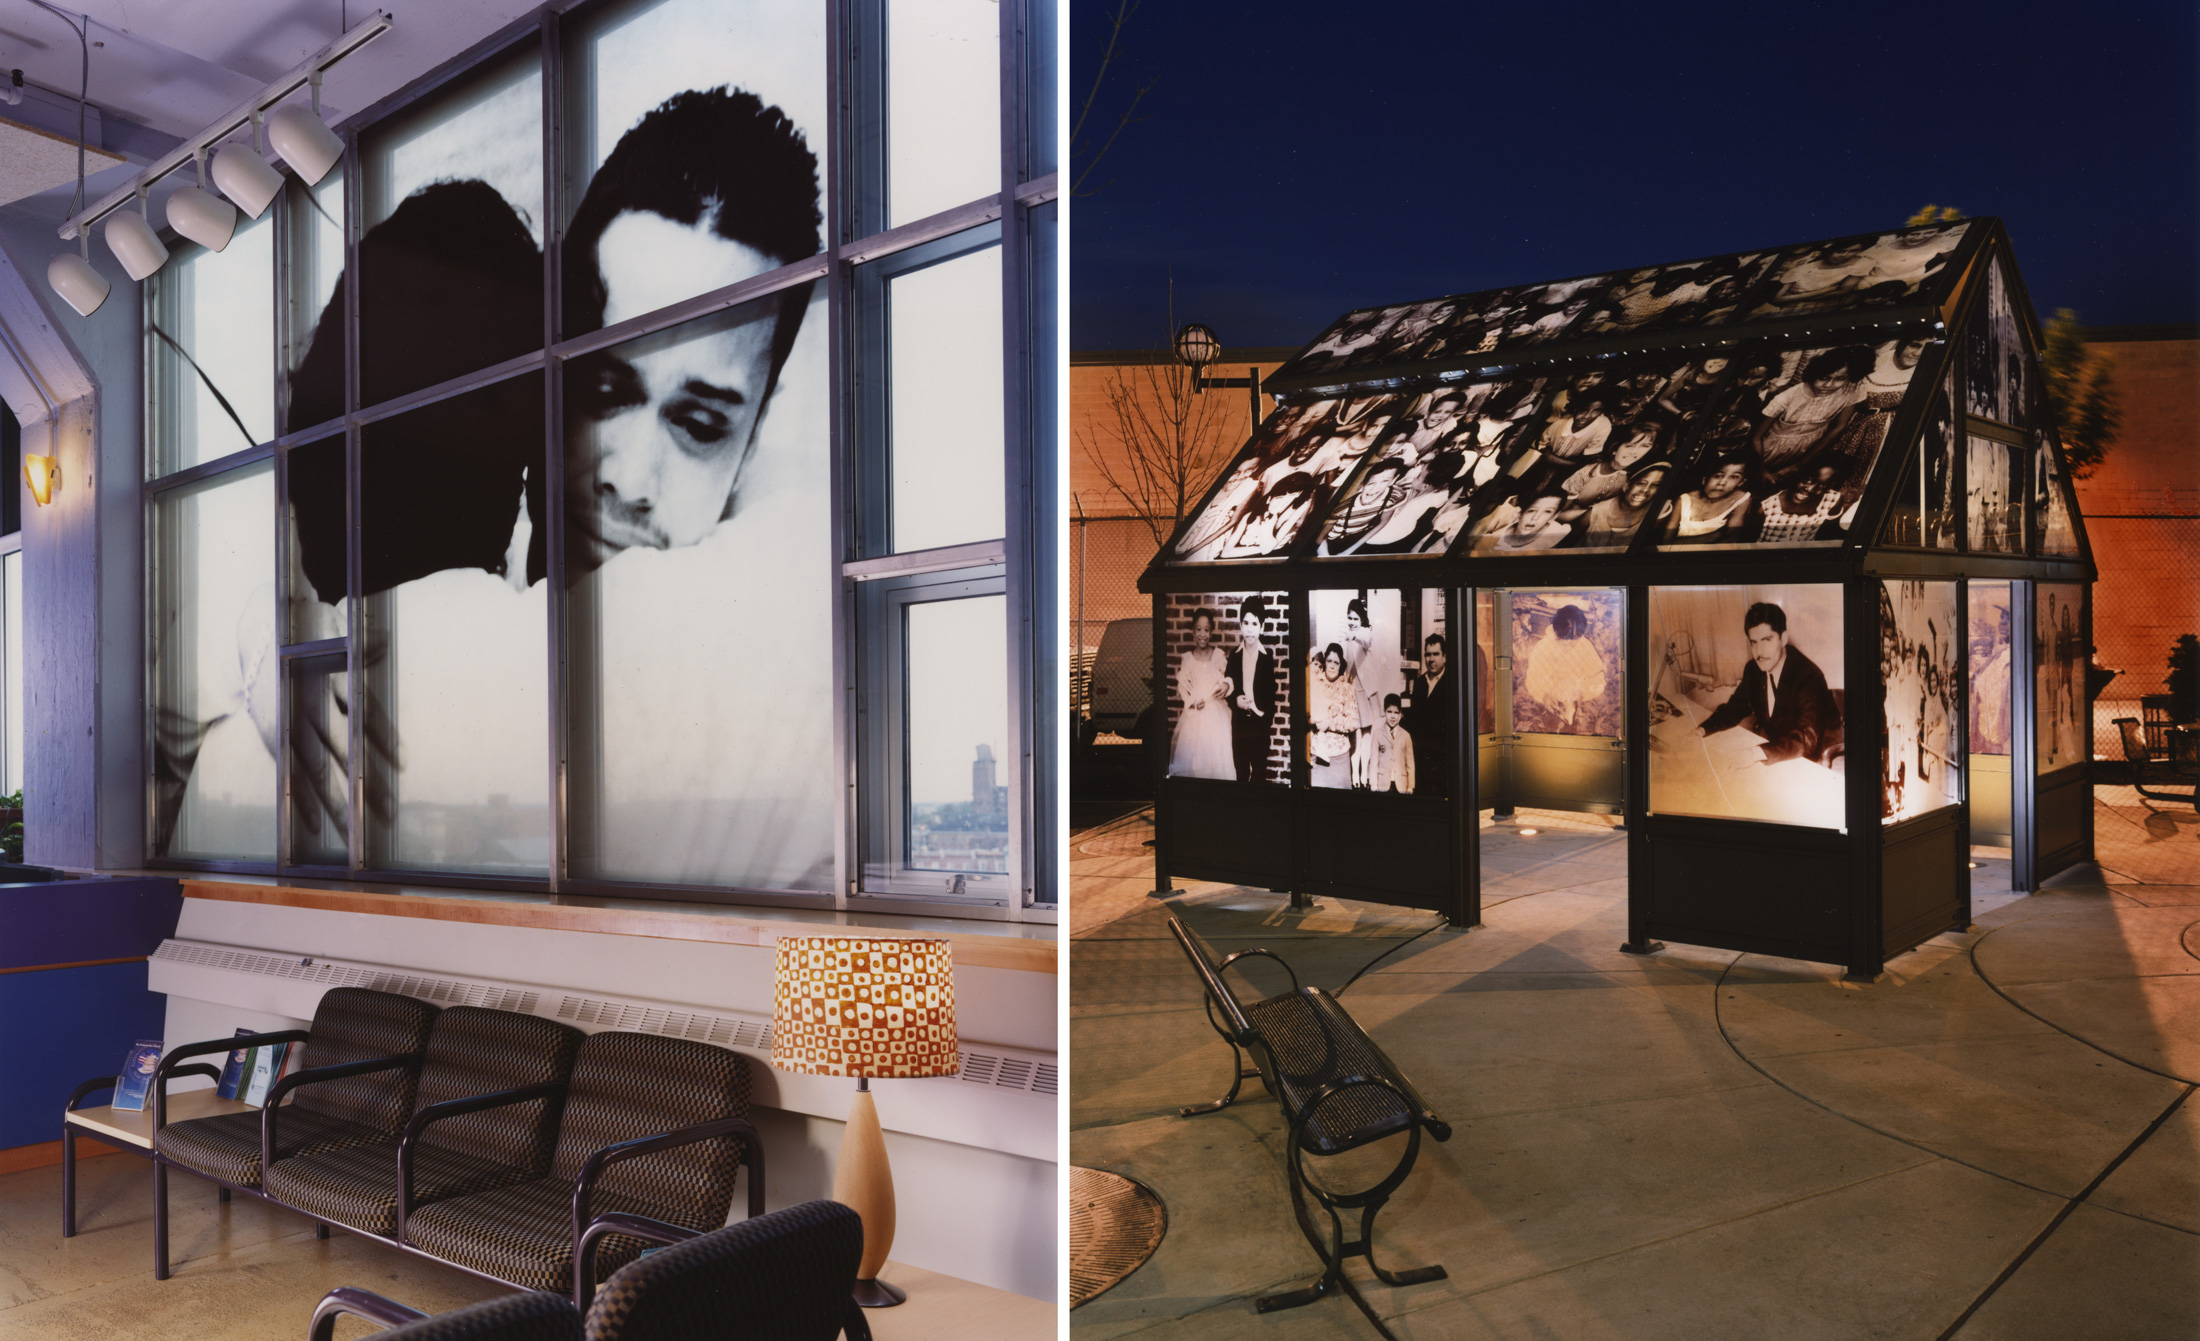 """Photos of Pepón Osorio's """"I have a story to tell you..."""" installation that show how the photographs were enlarged and transferred to glass panels that comprise the artwork. The"""